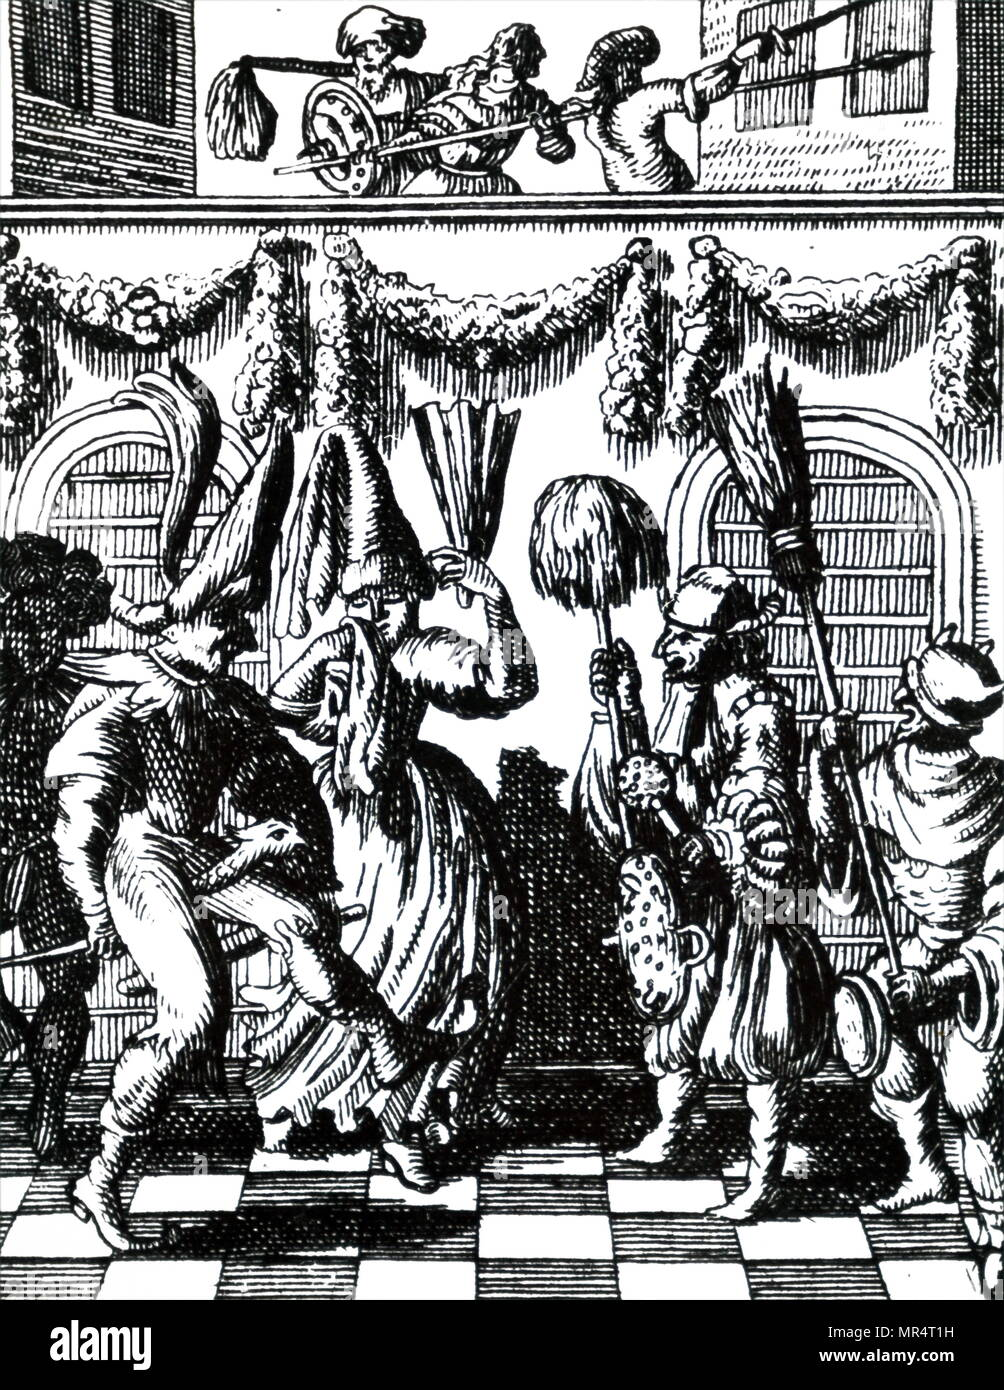 Engraving depicting the celebration of Purim. Purim is a Jewish holiday that commemorates the saving of the Jewish people from Haman, who was planning to kill all the Jews. Dated 18th century - Stock Image